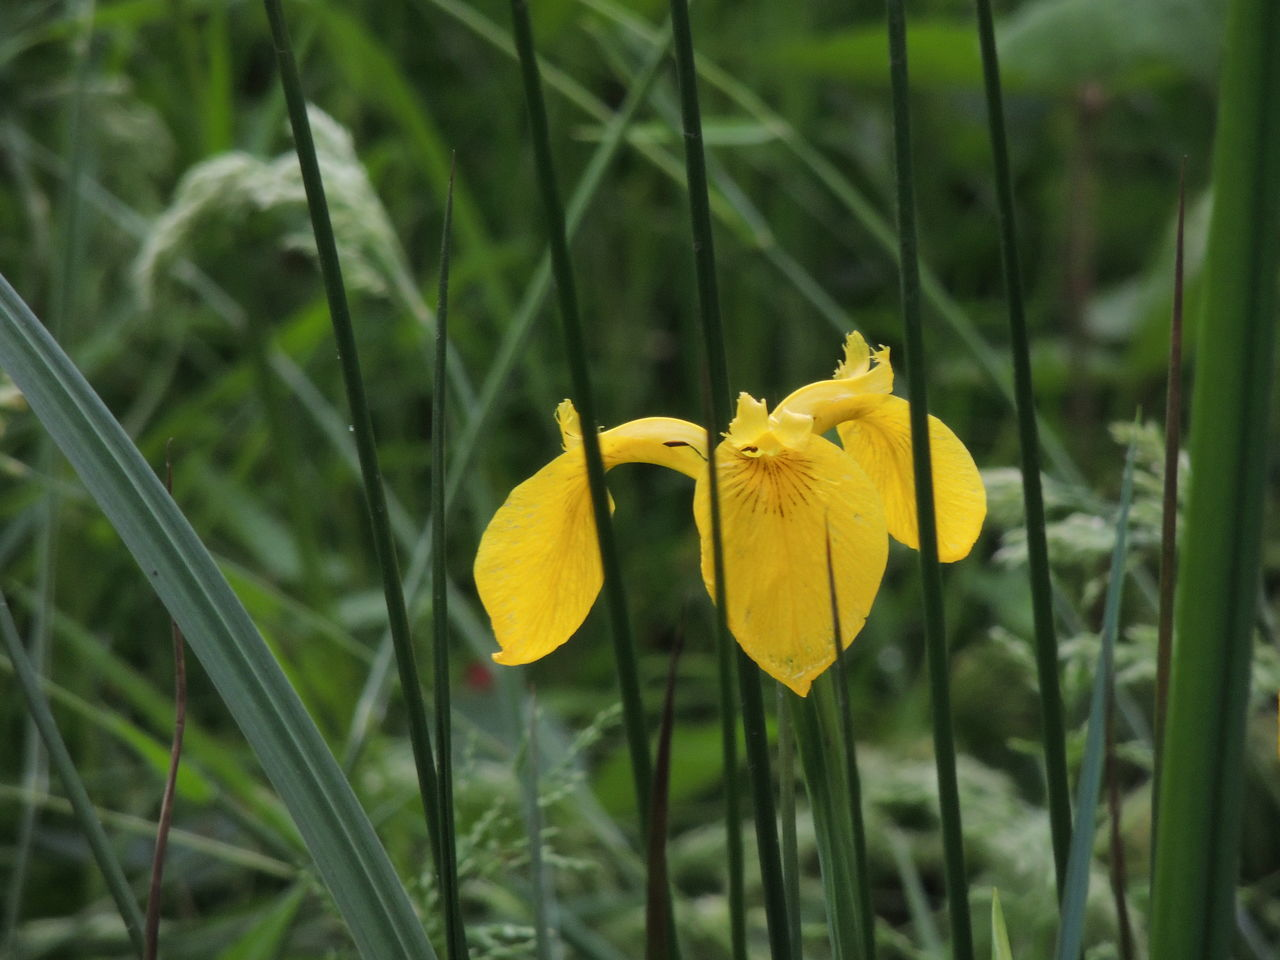 flower, yellow, petal, fragility, growth, nature, freshness, plant, beauty in nature, flower head, outdoors, day, close-up, blooming, daffodil, no people